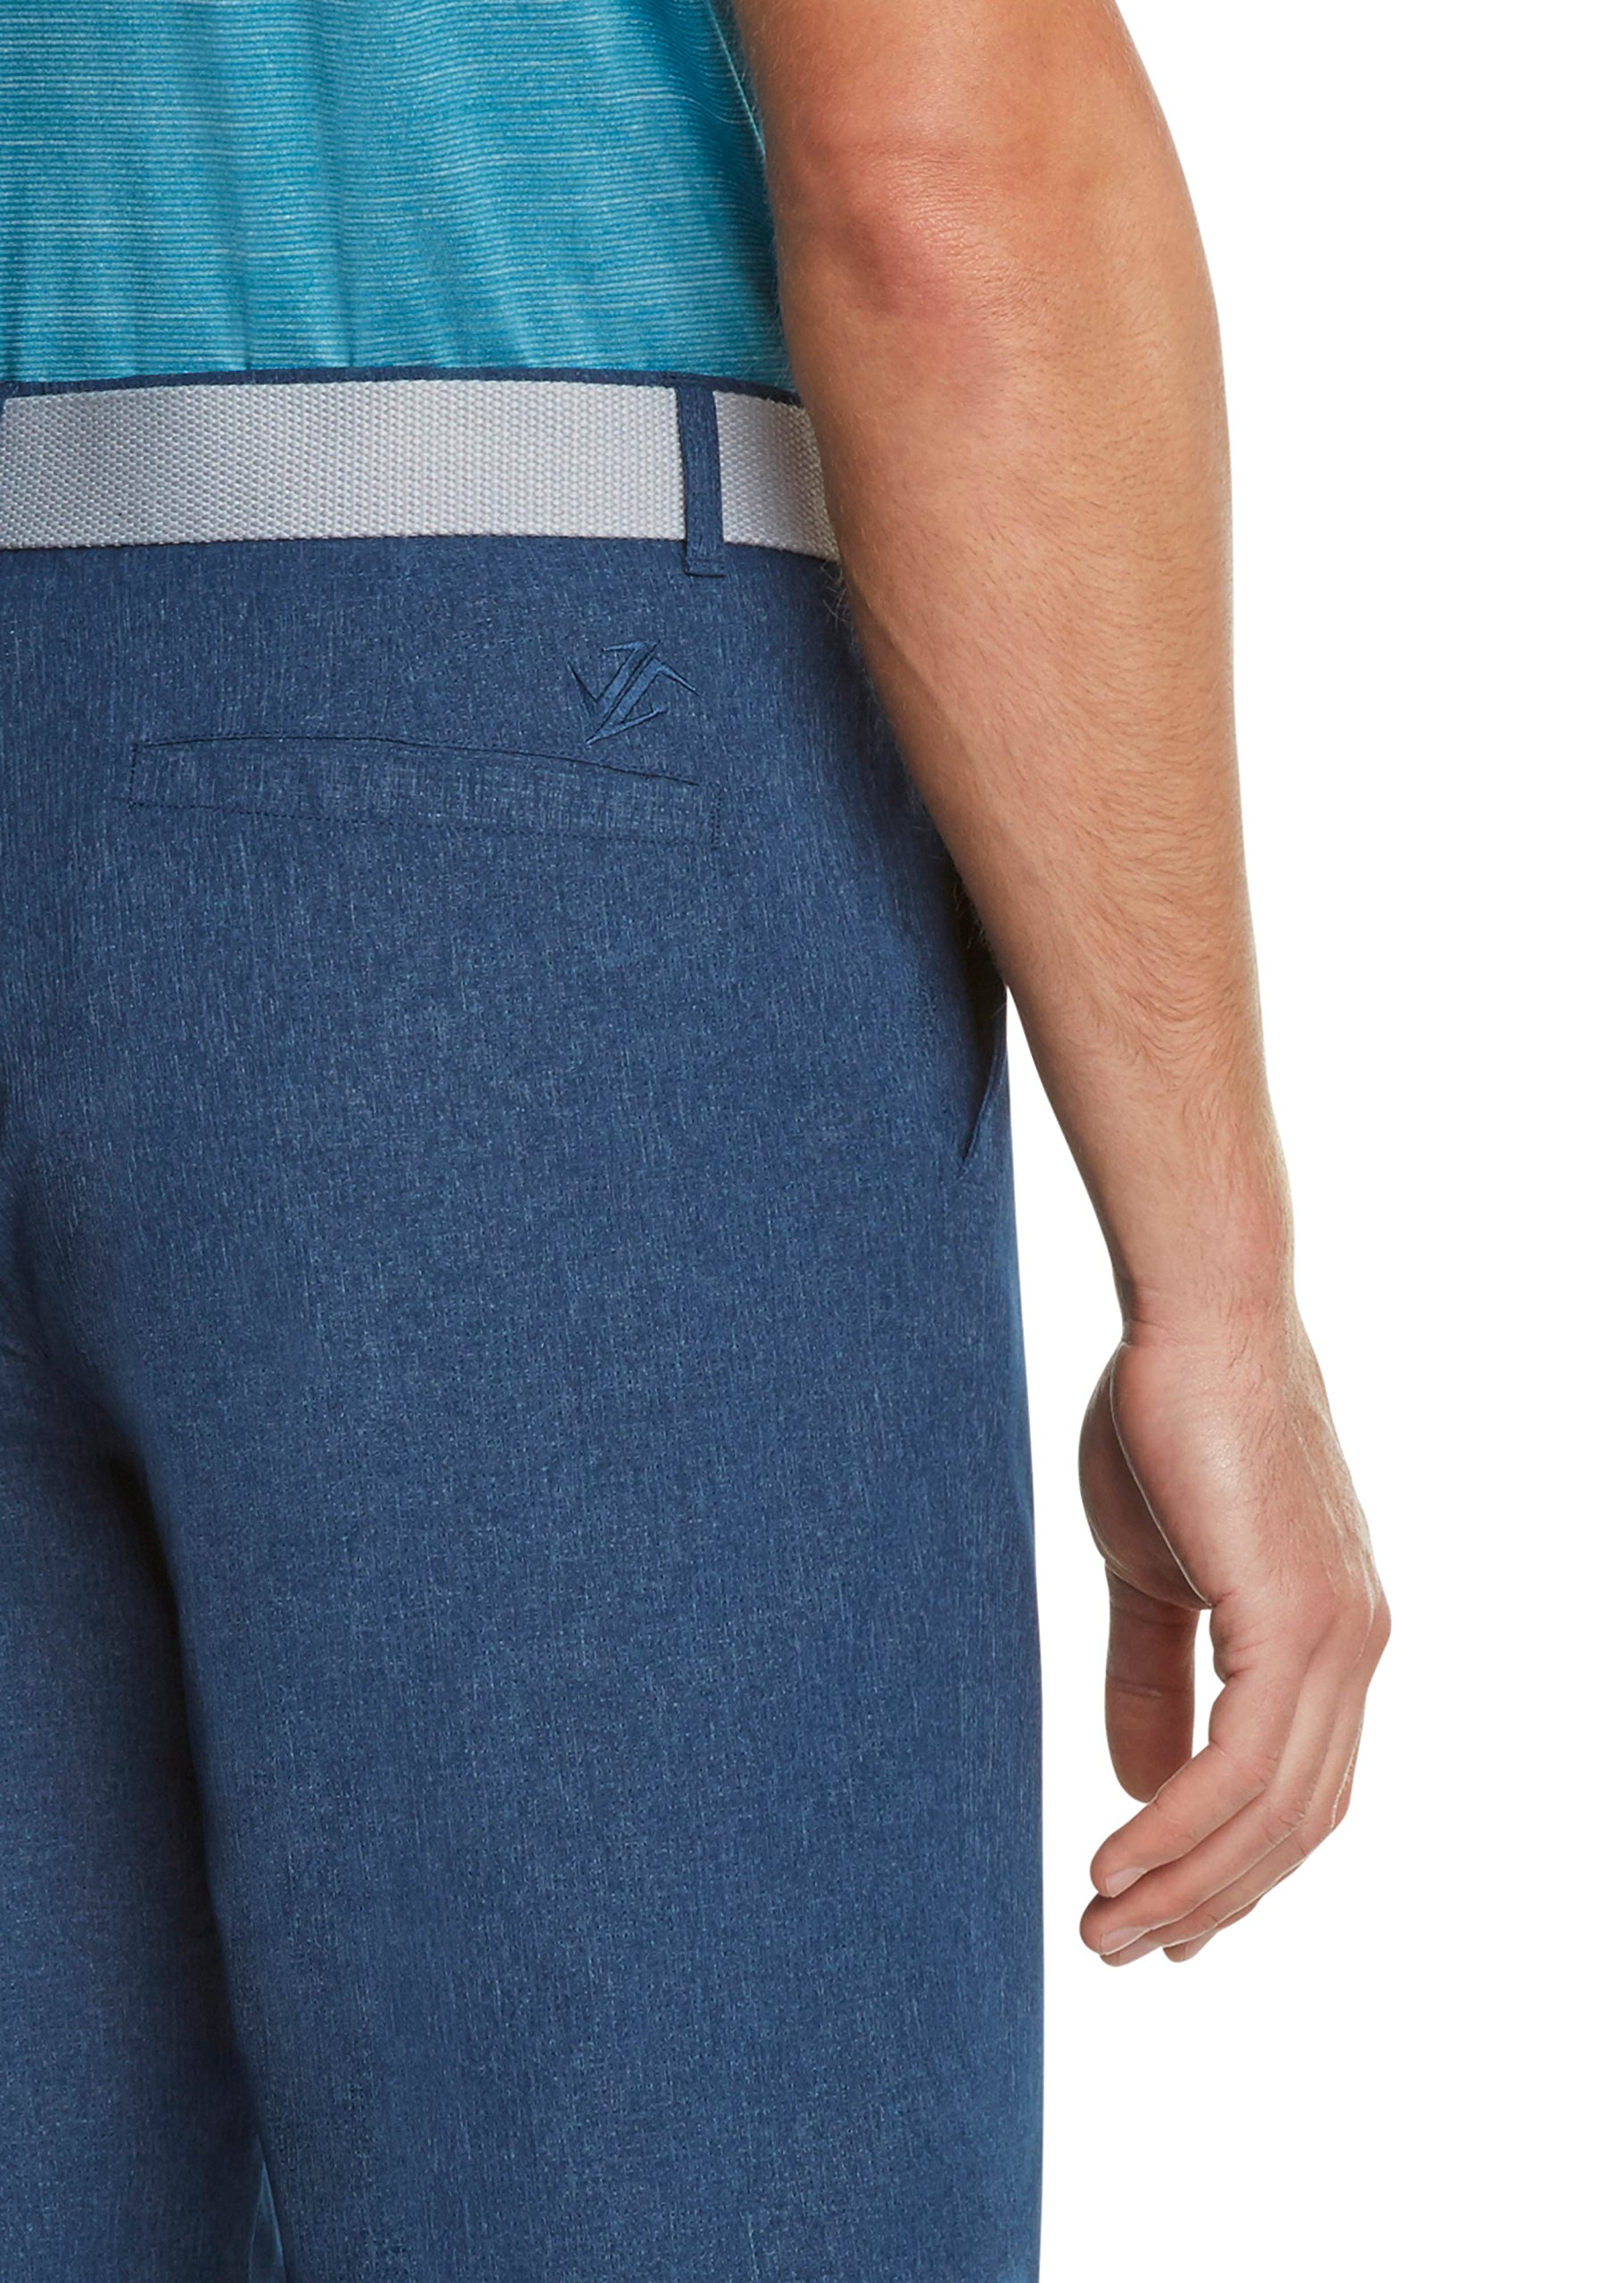 Jolt Gear Dry Fit Golf Shorts for Men – Casual Mens Shorts Moisture Wicking - Men's Chino Shorts with Elastic Waistband by Jolt Gear (Image #4)